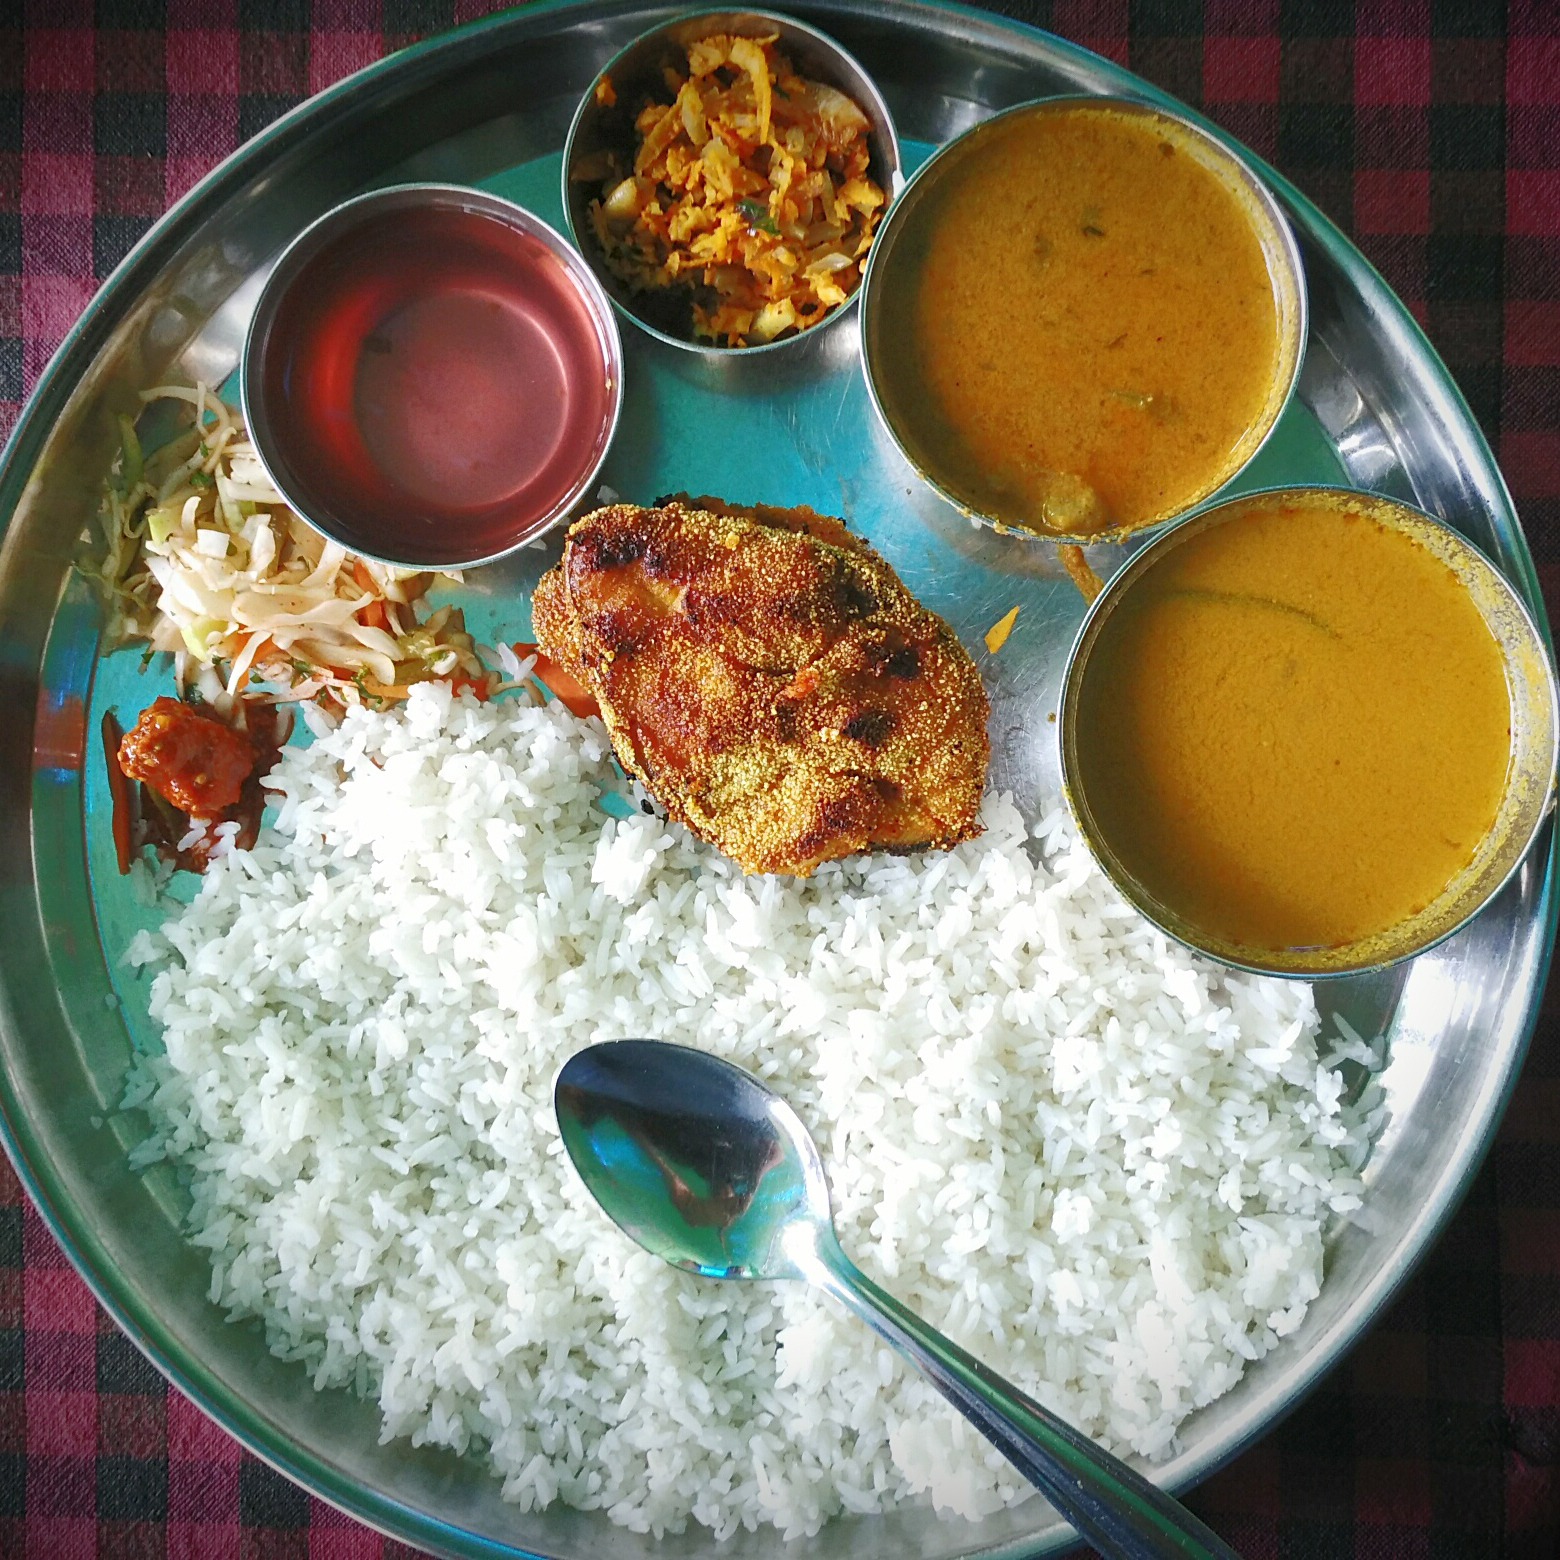 There is a food bank in India where people can deposit and withdraw home-cooked meals.